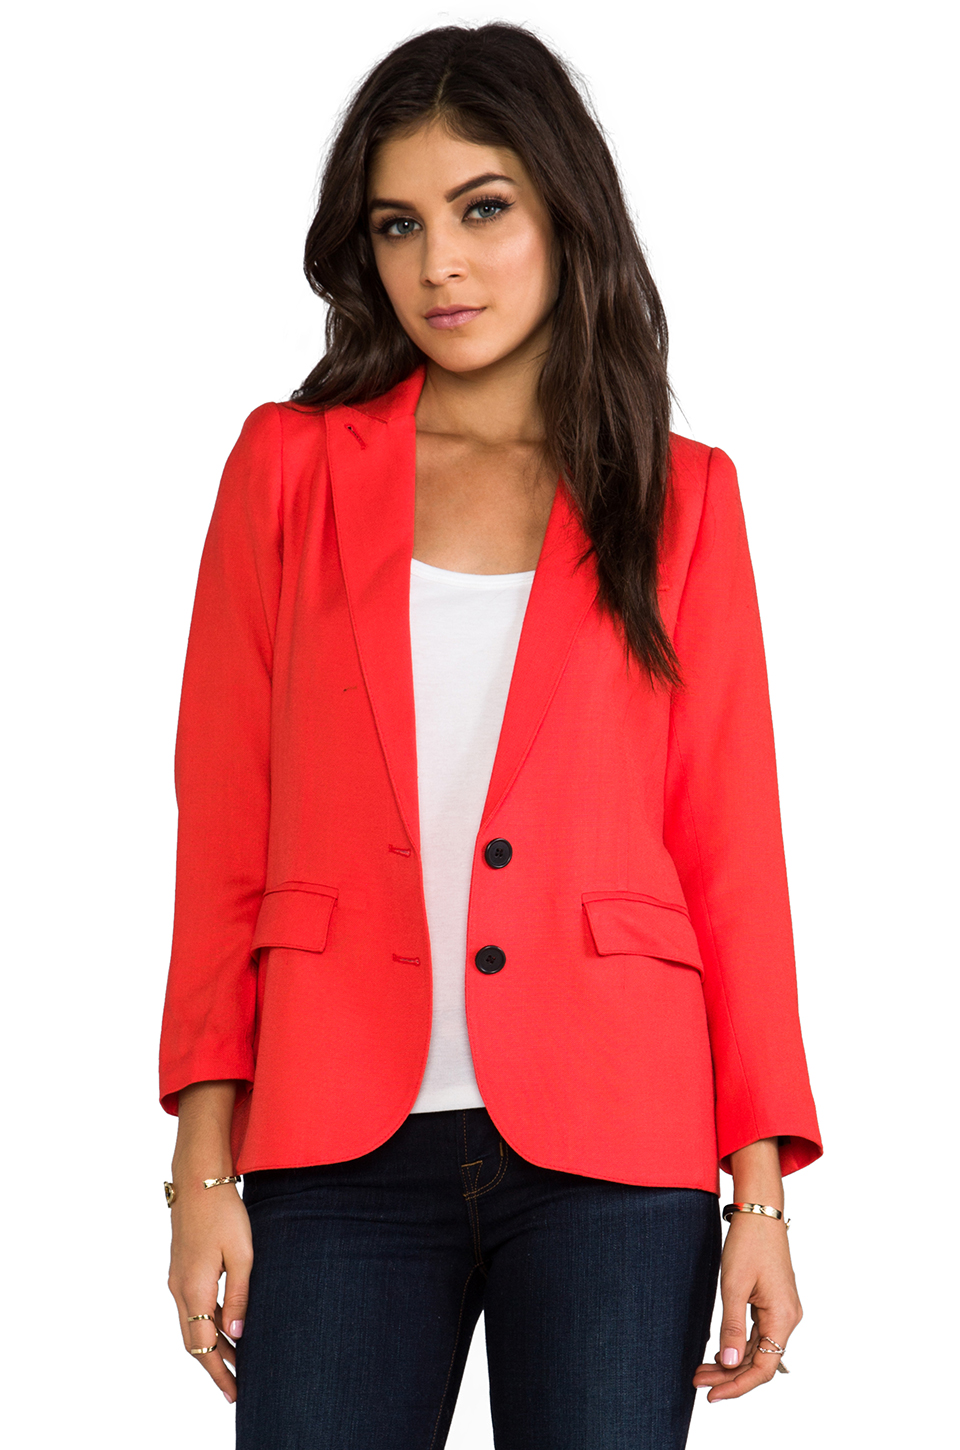 Smythe Boy Blazer in Red at Revolve Clothing